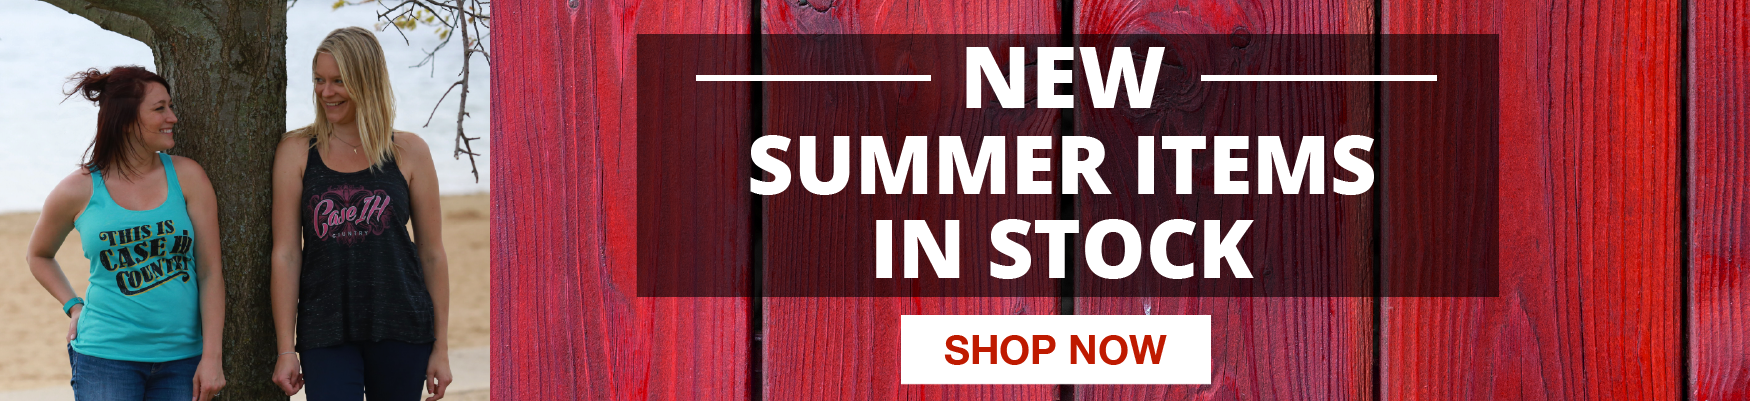 New summer items in stock now